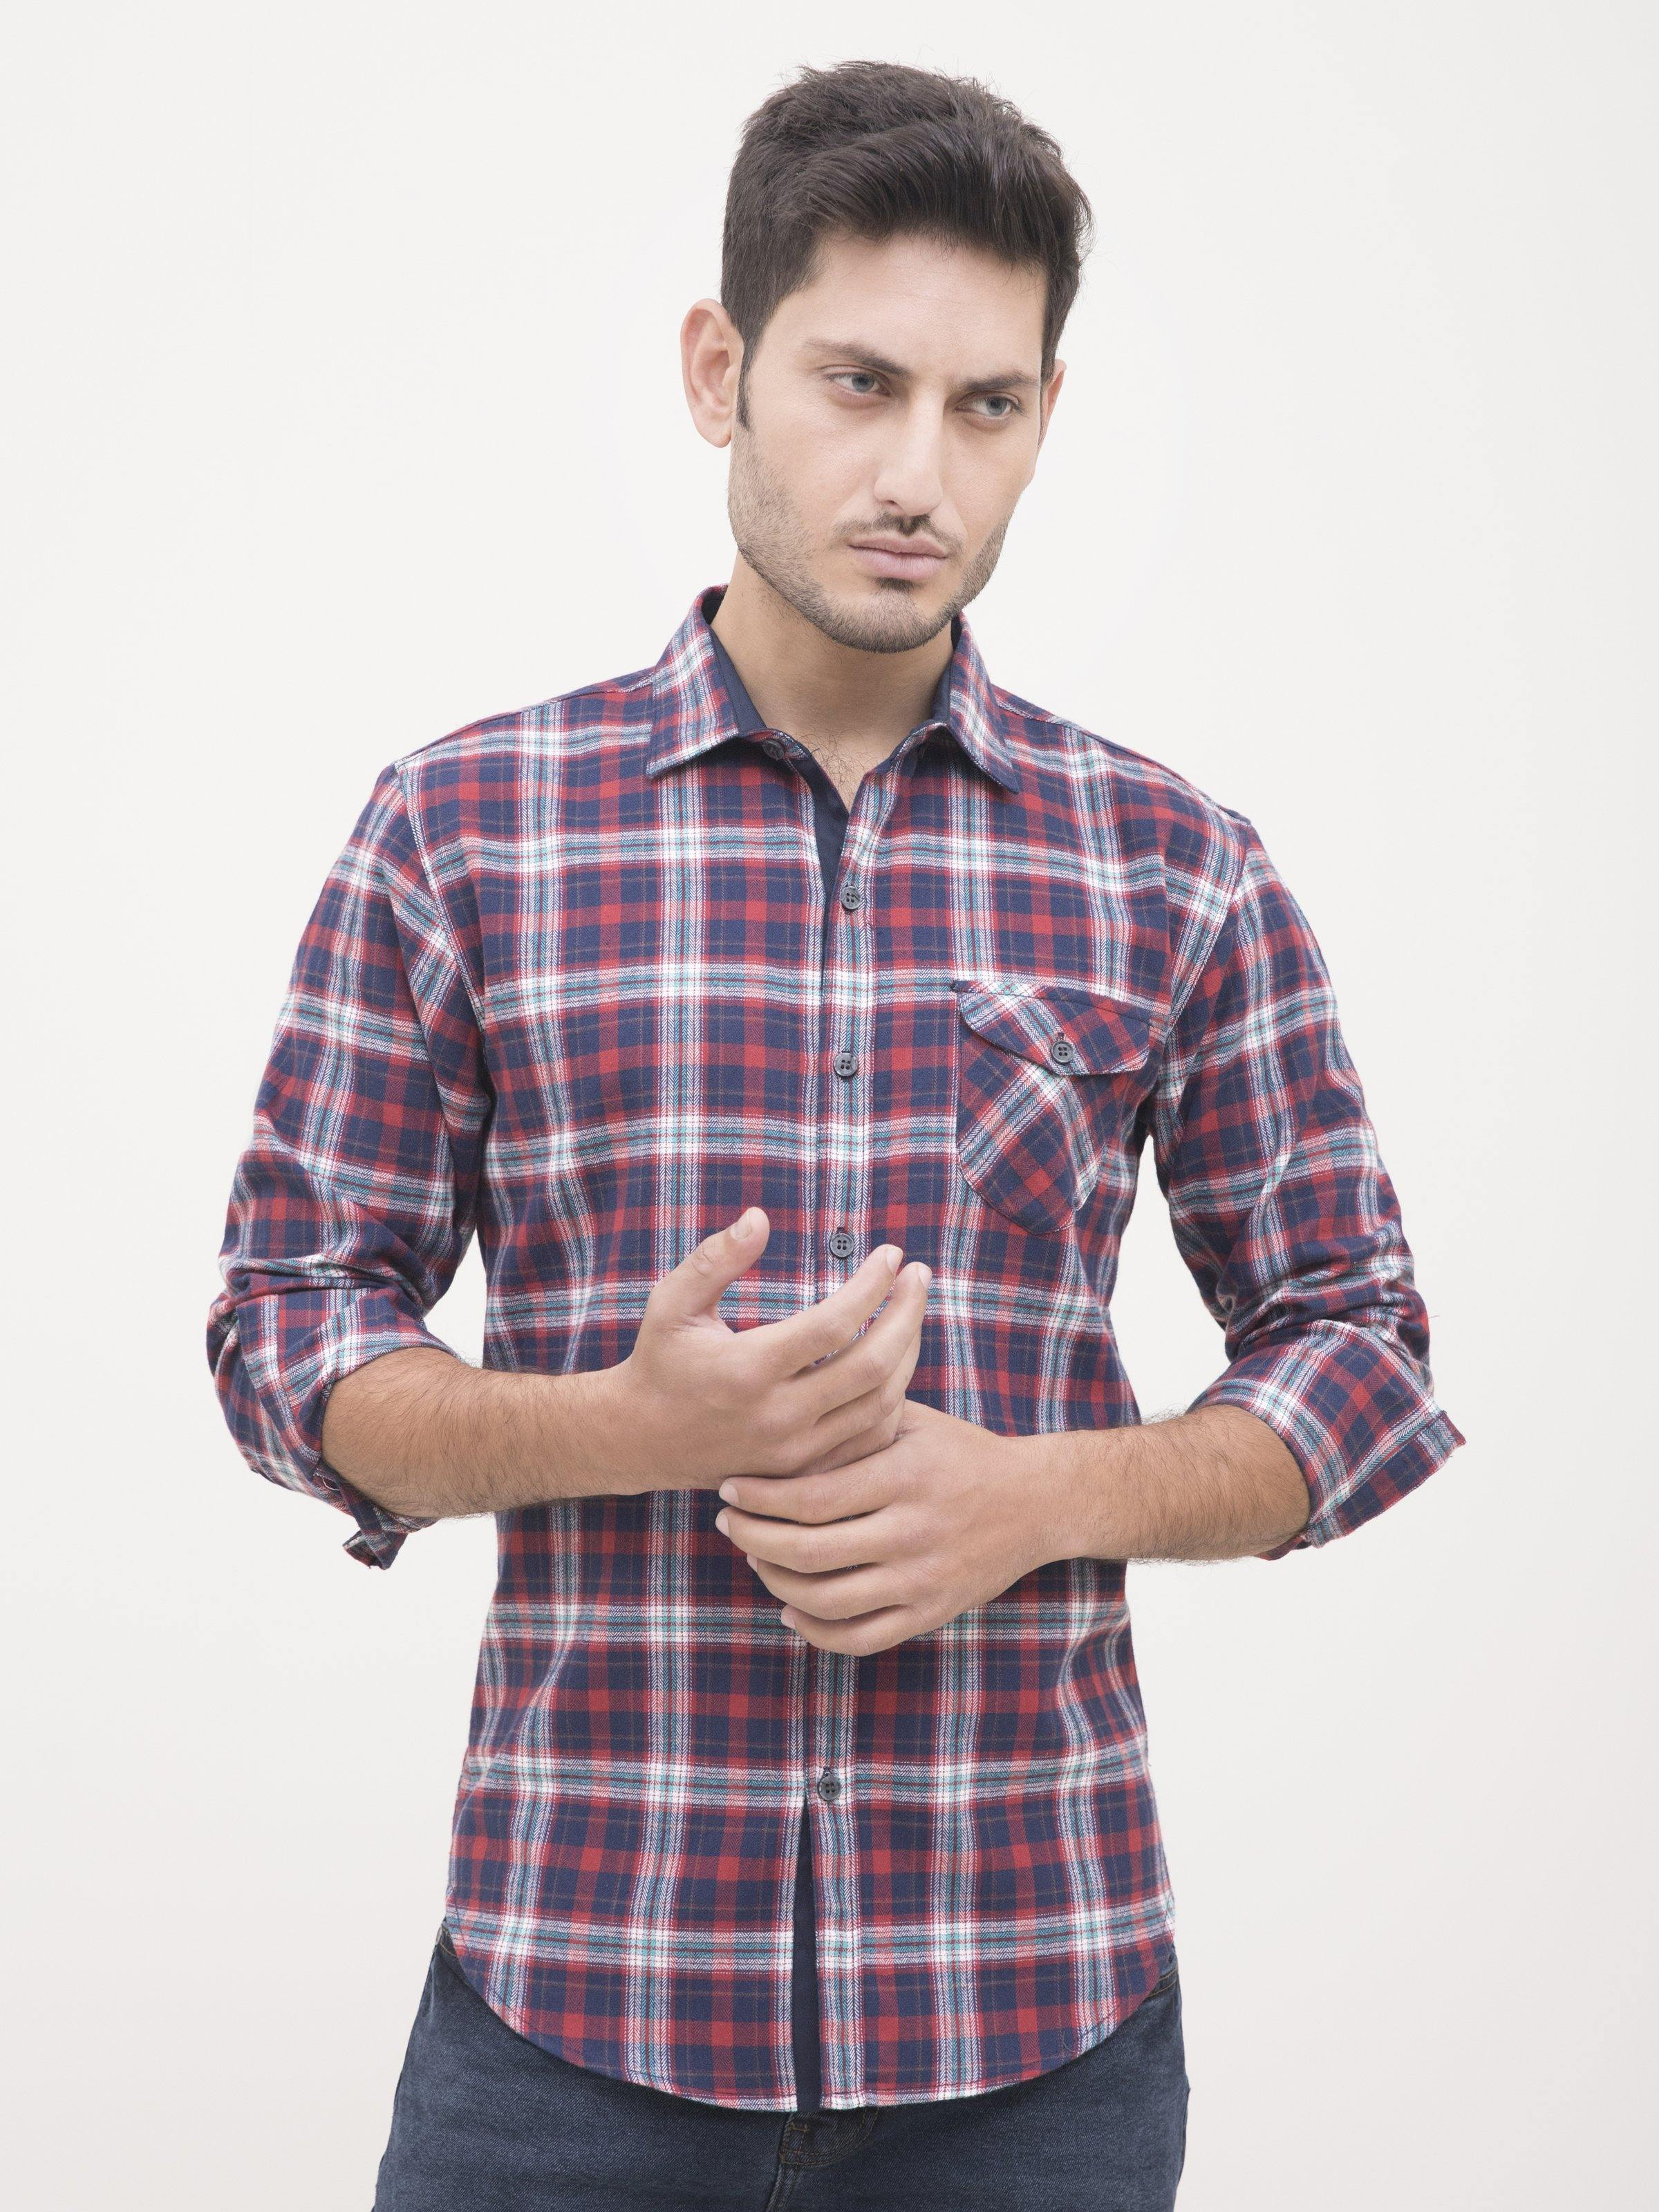 CASUAL SHIRT FULL SLEEVE RED CHECK - Charcoal Clothing -